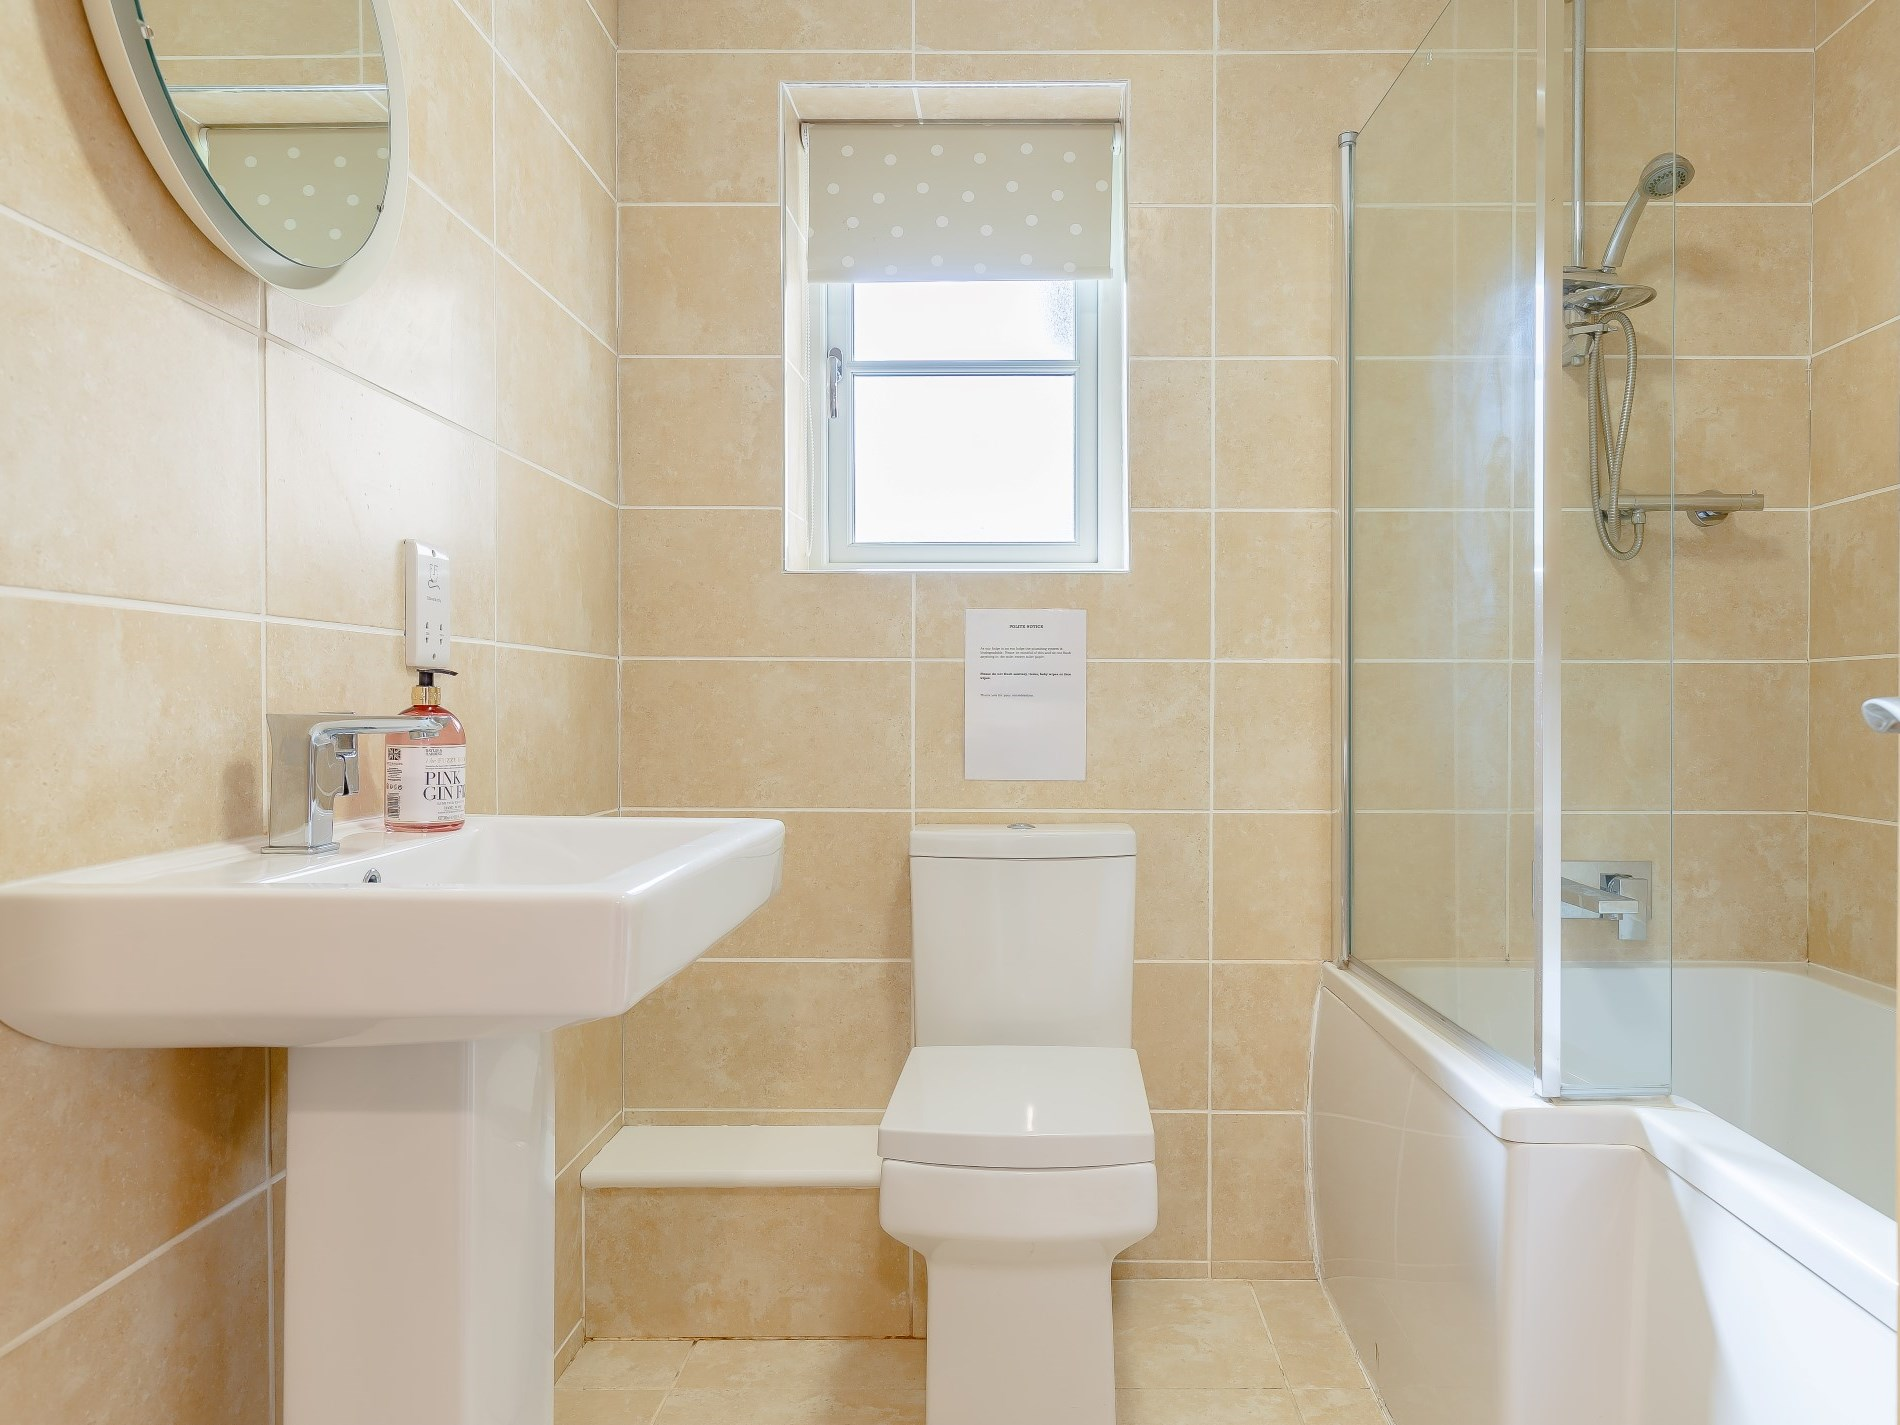 3 Bedroom Cottage in St. Columb, Cornwall